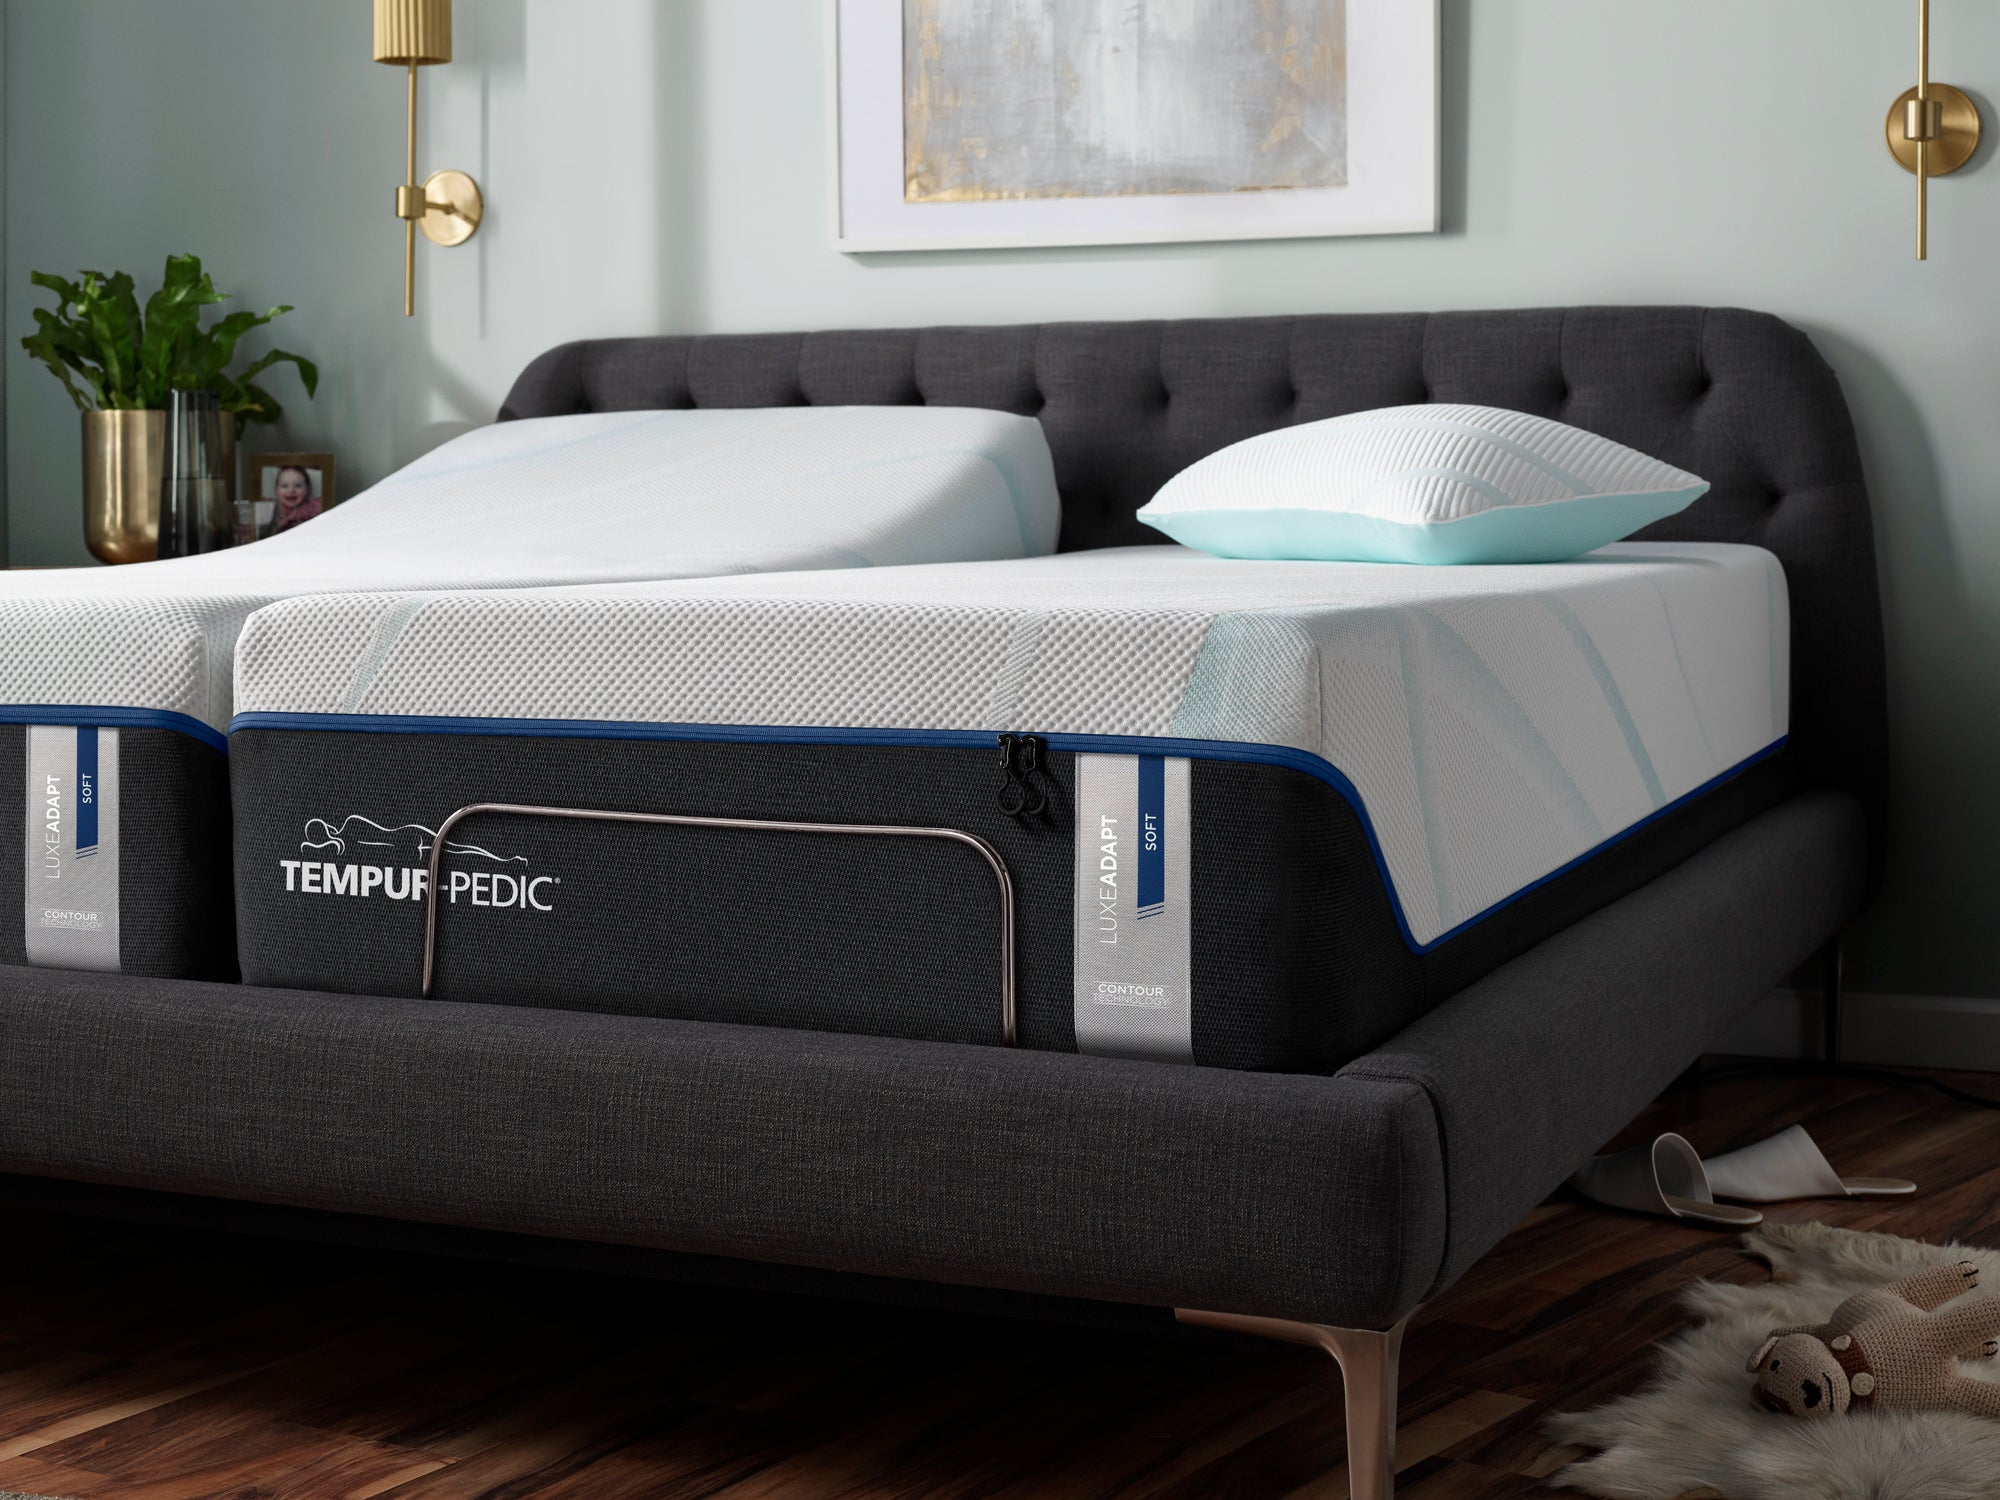 Meet the Mattress: the TEMPUR-Luxe Adapt